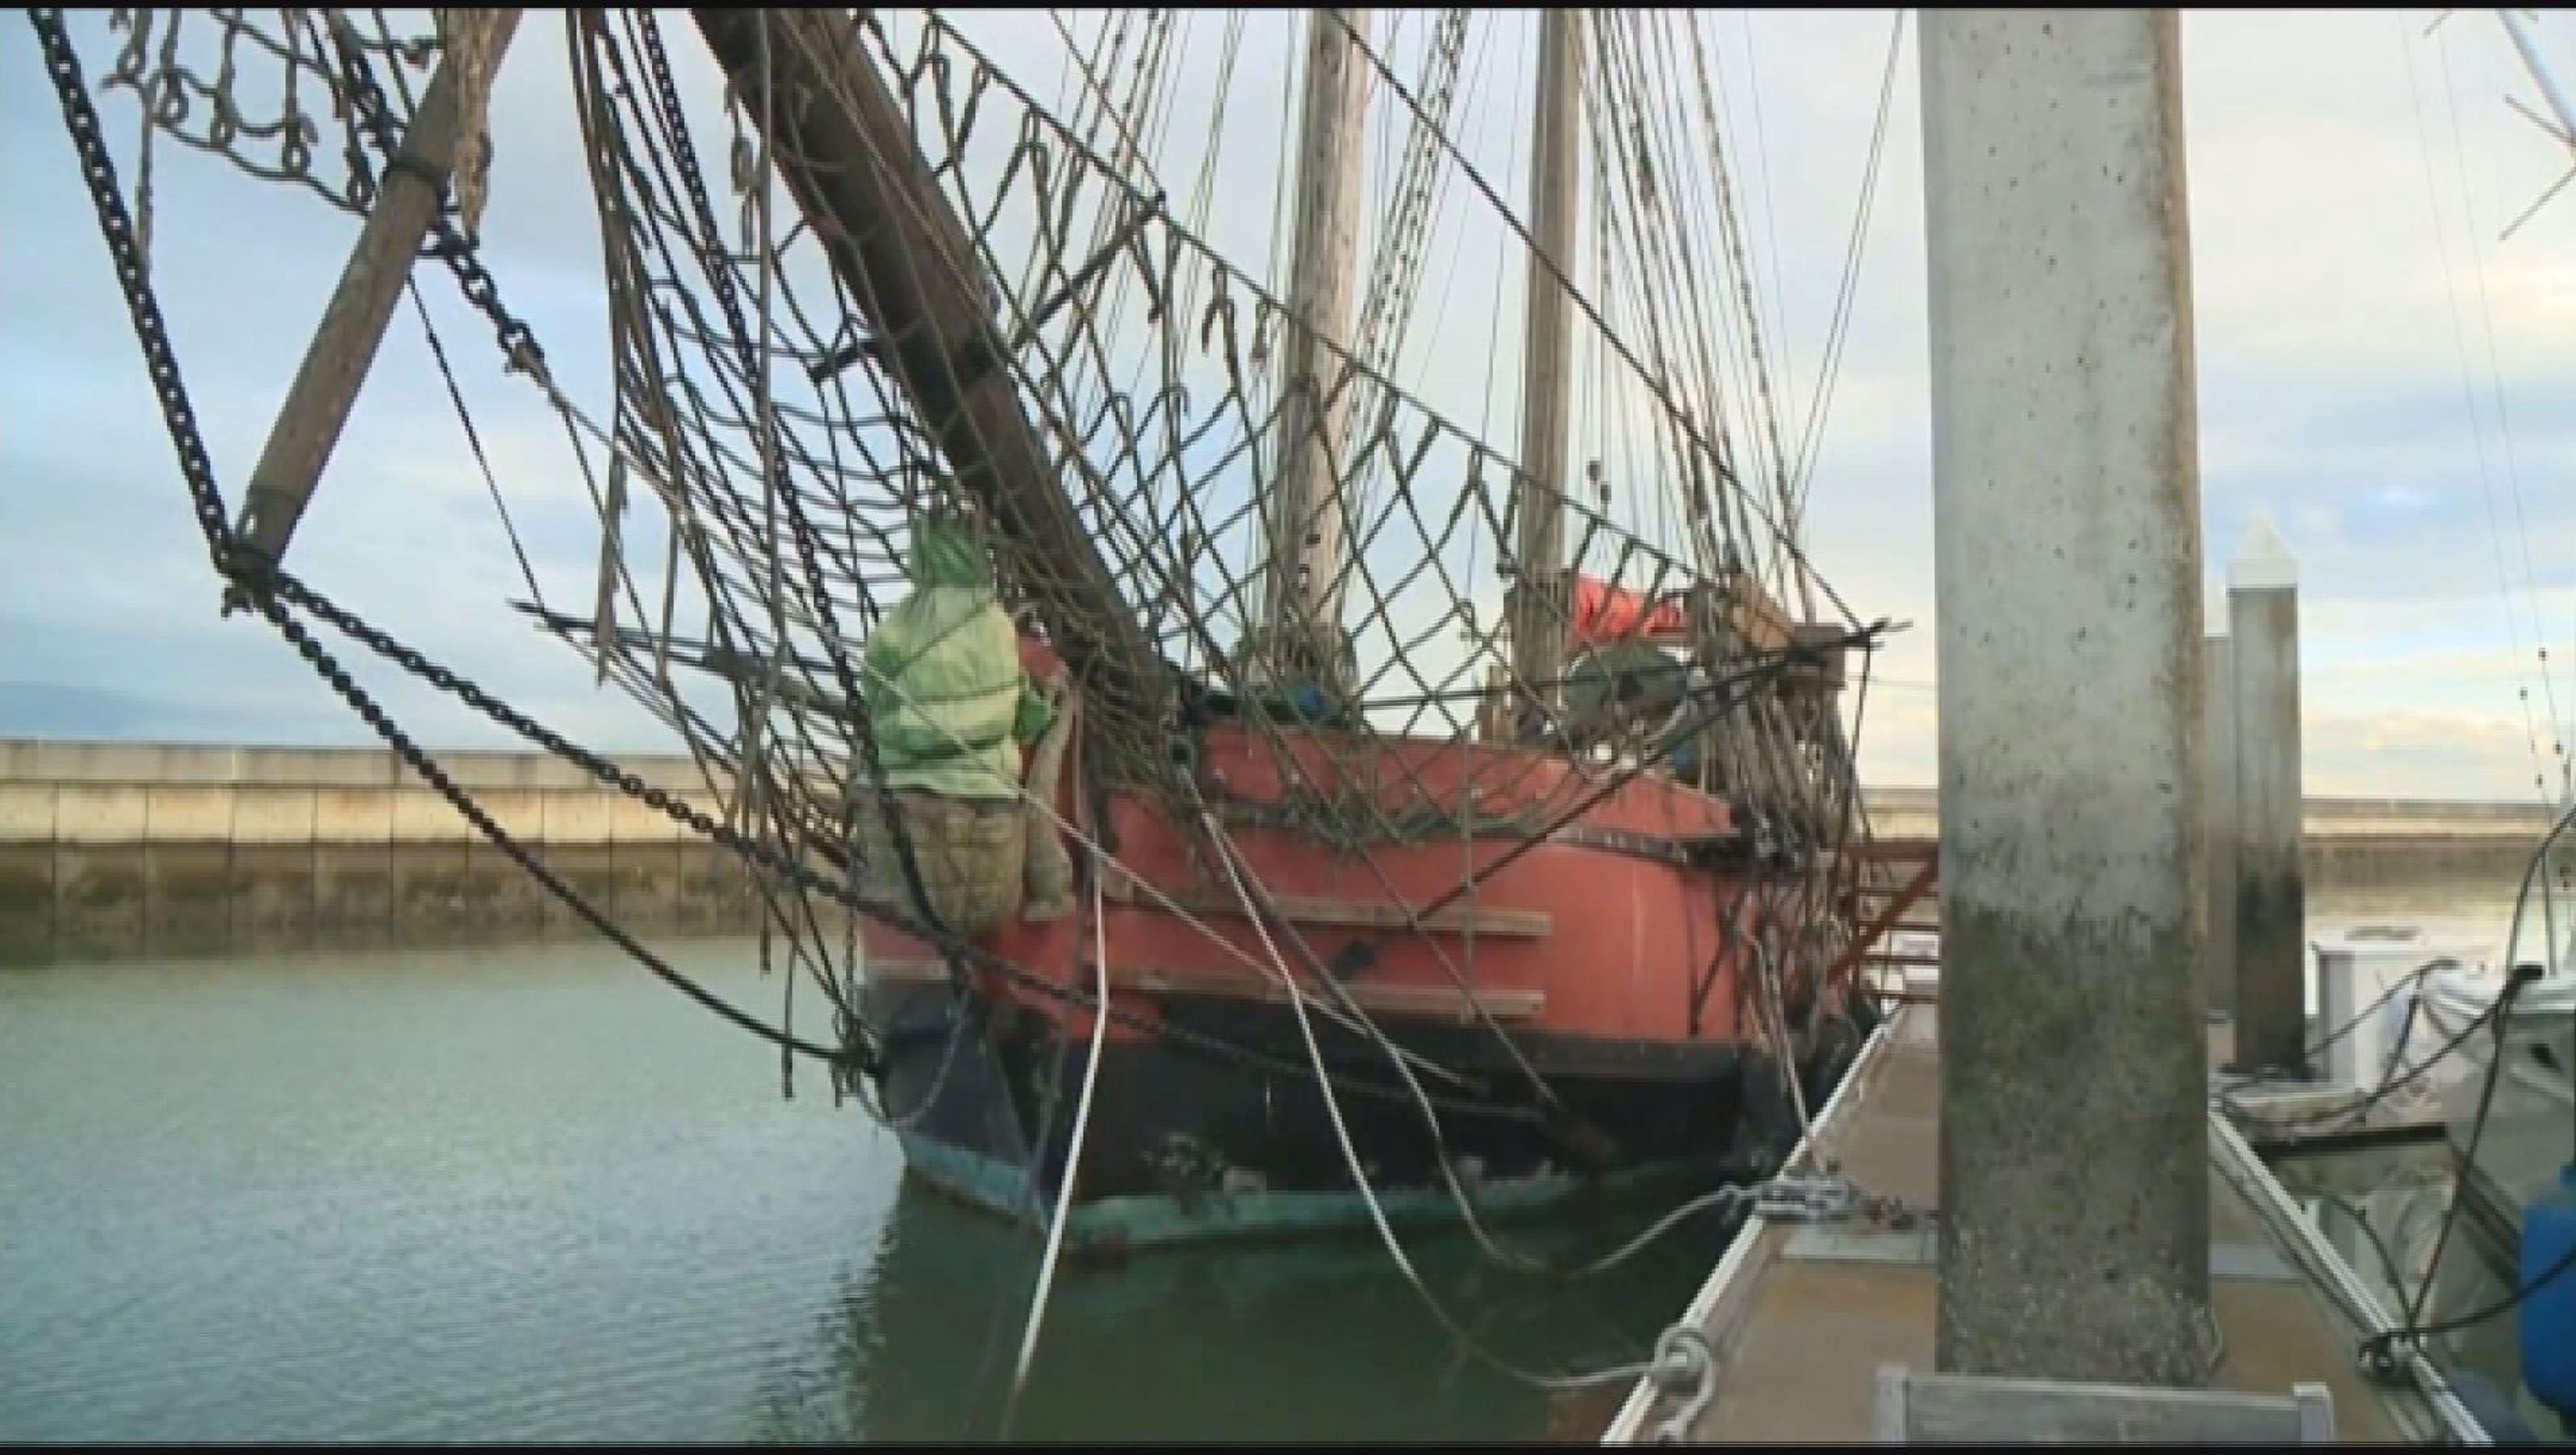 Pirate ship for sale on craigslist for Sips for sale